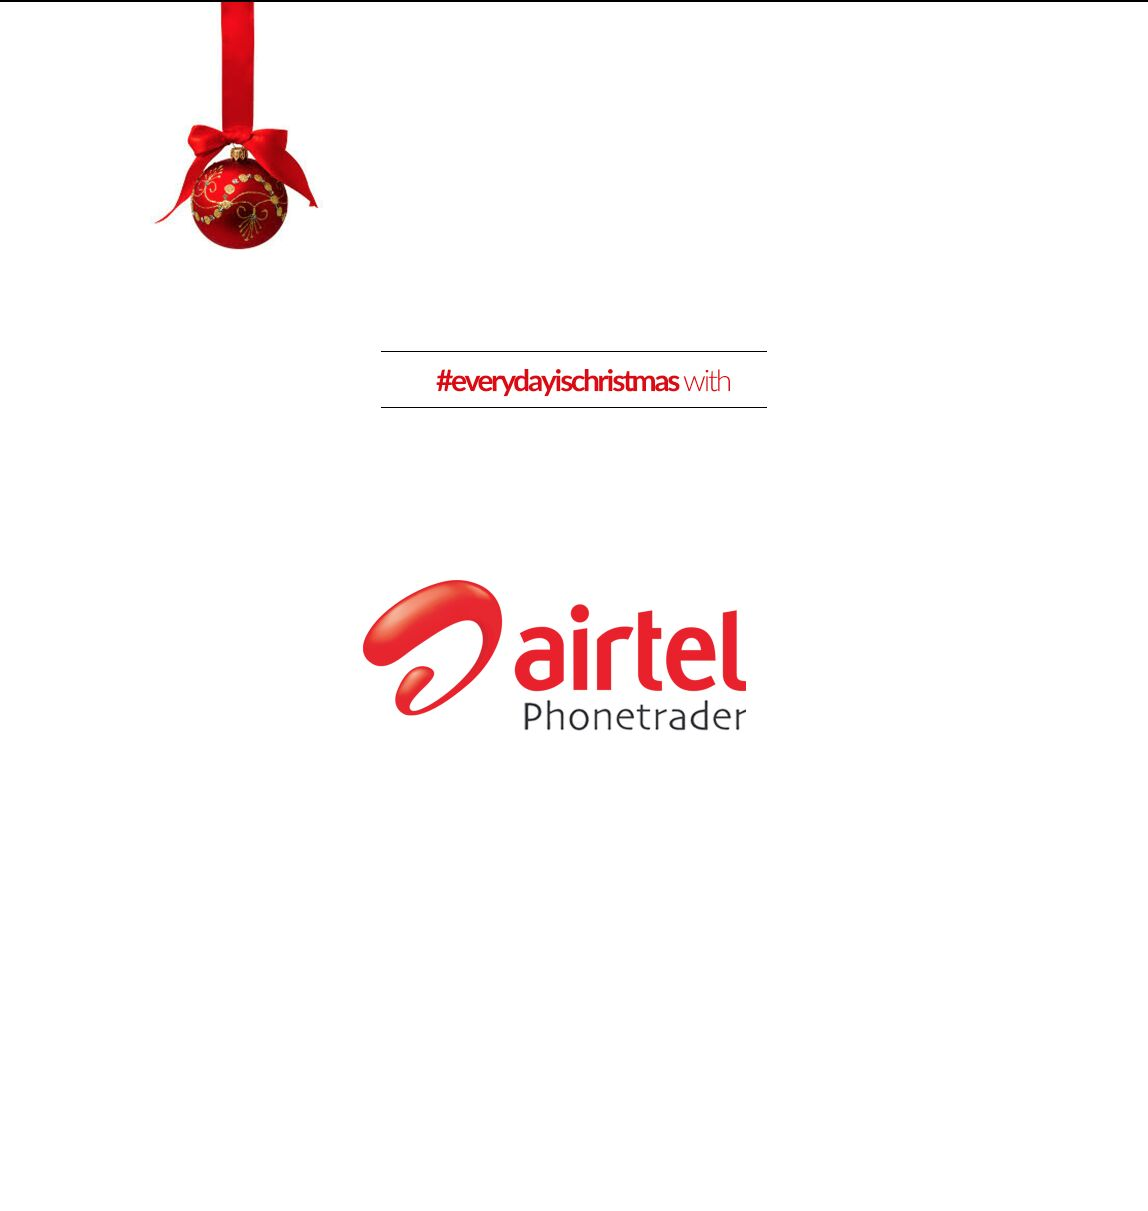 Everyday is Christmas with Airtel Phonetrader